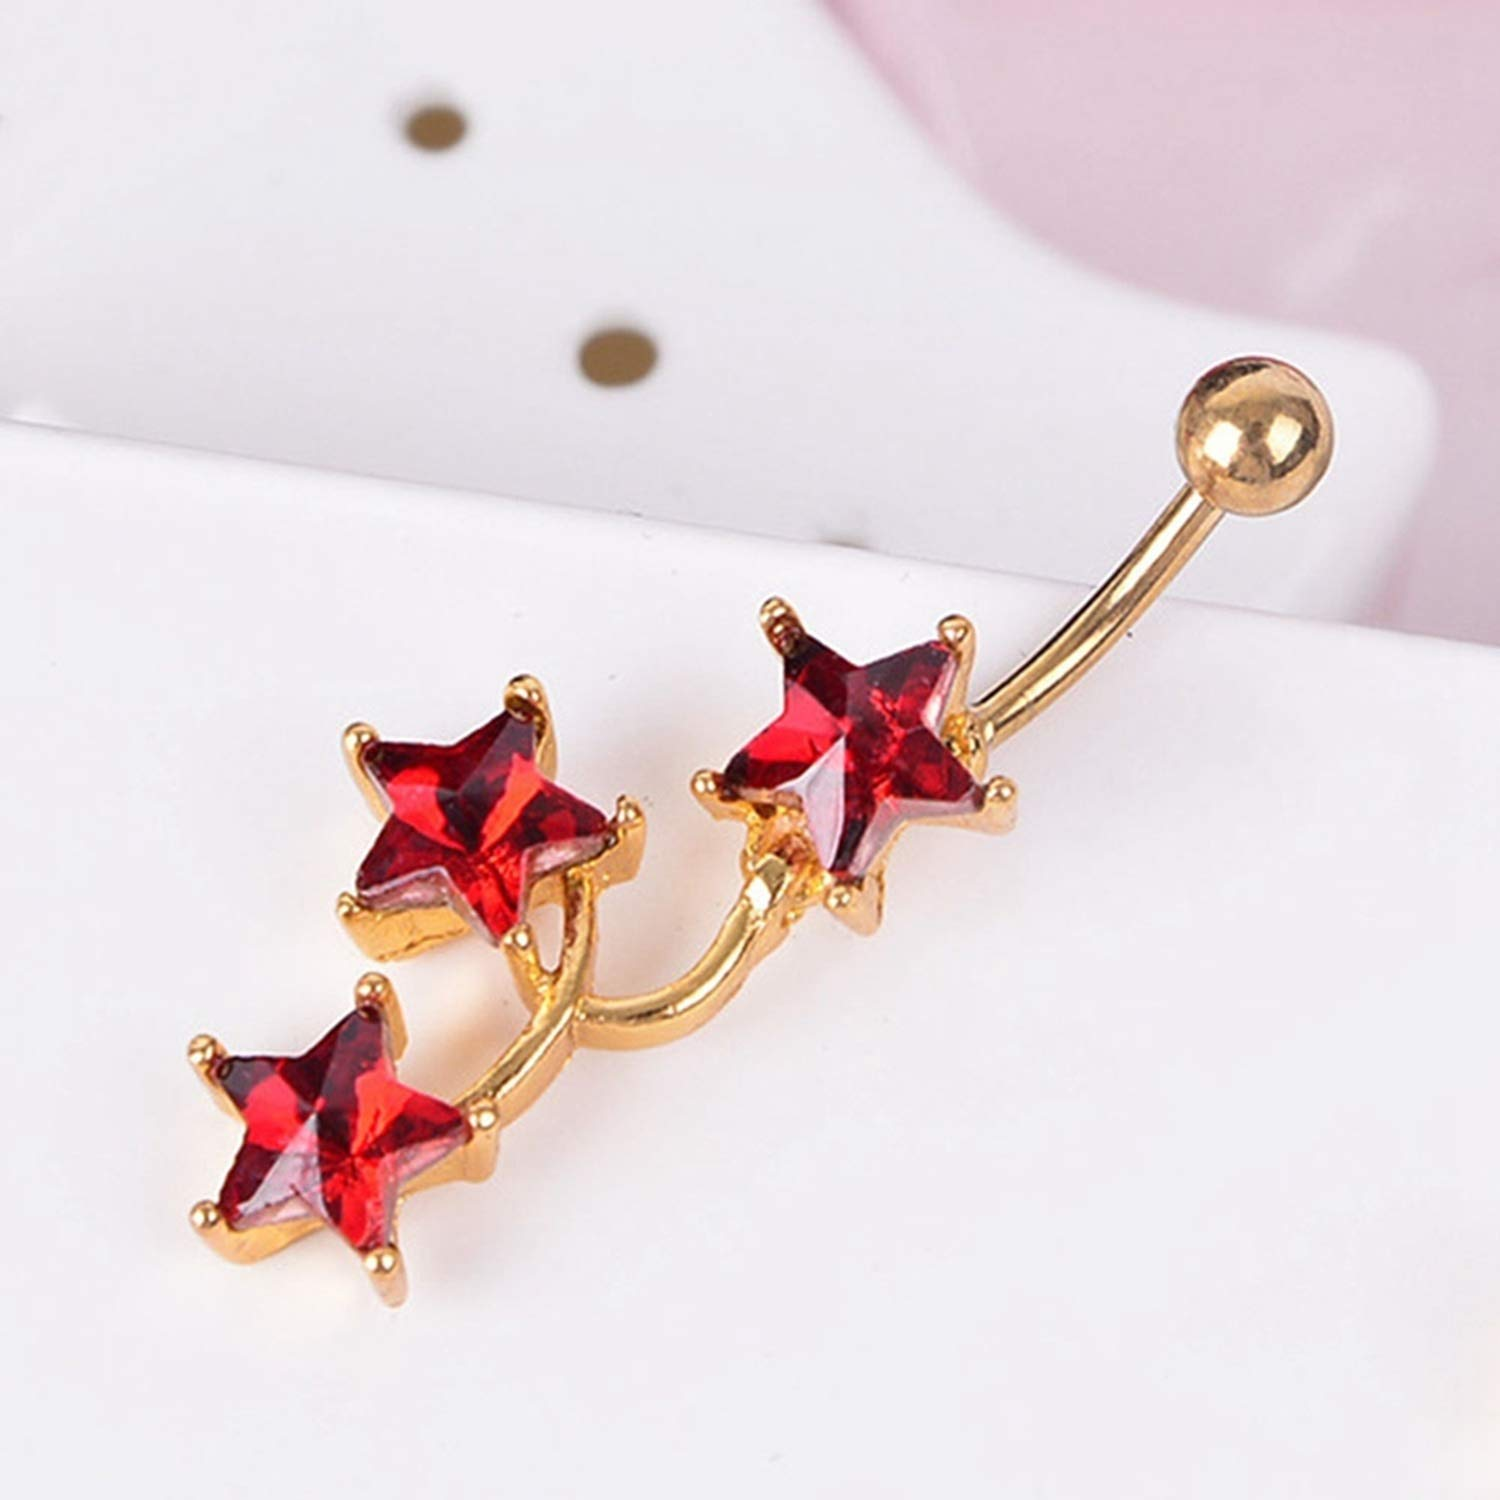 Nona E Ansell Star Pendant Hanging Umbilical Spiral Ring Ring Body Jewelry Surgical Steel Crystal Navel Ring